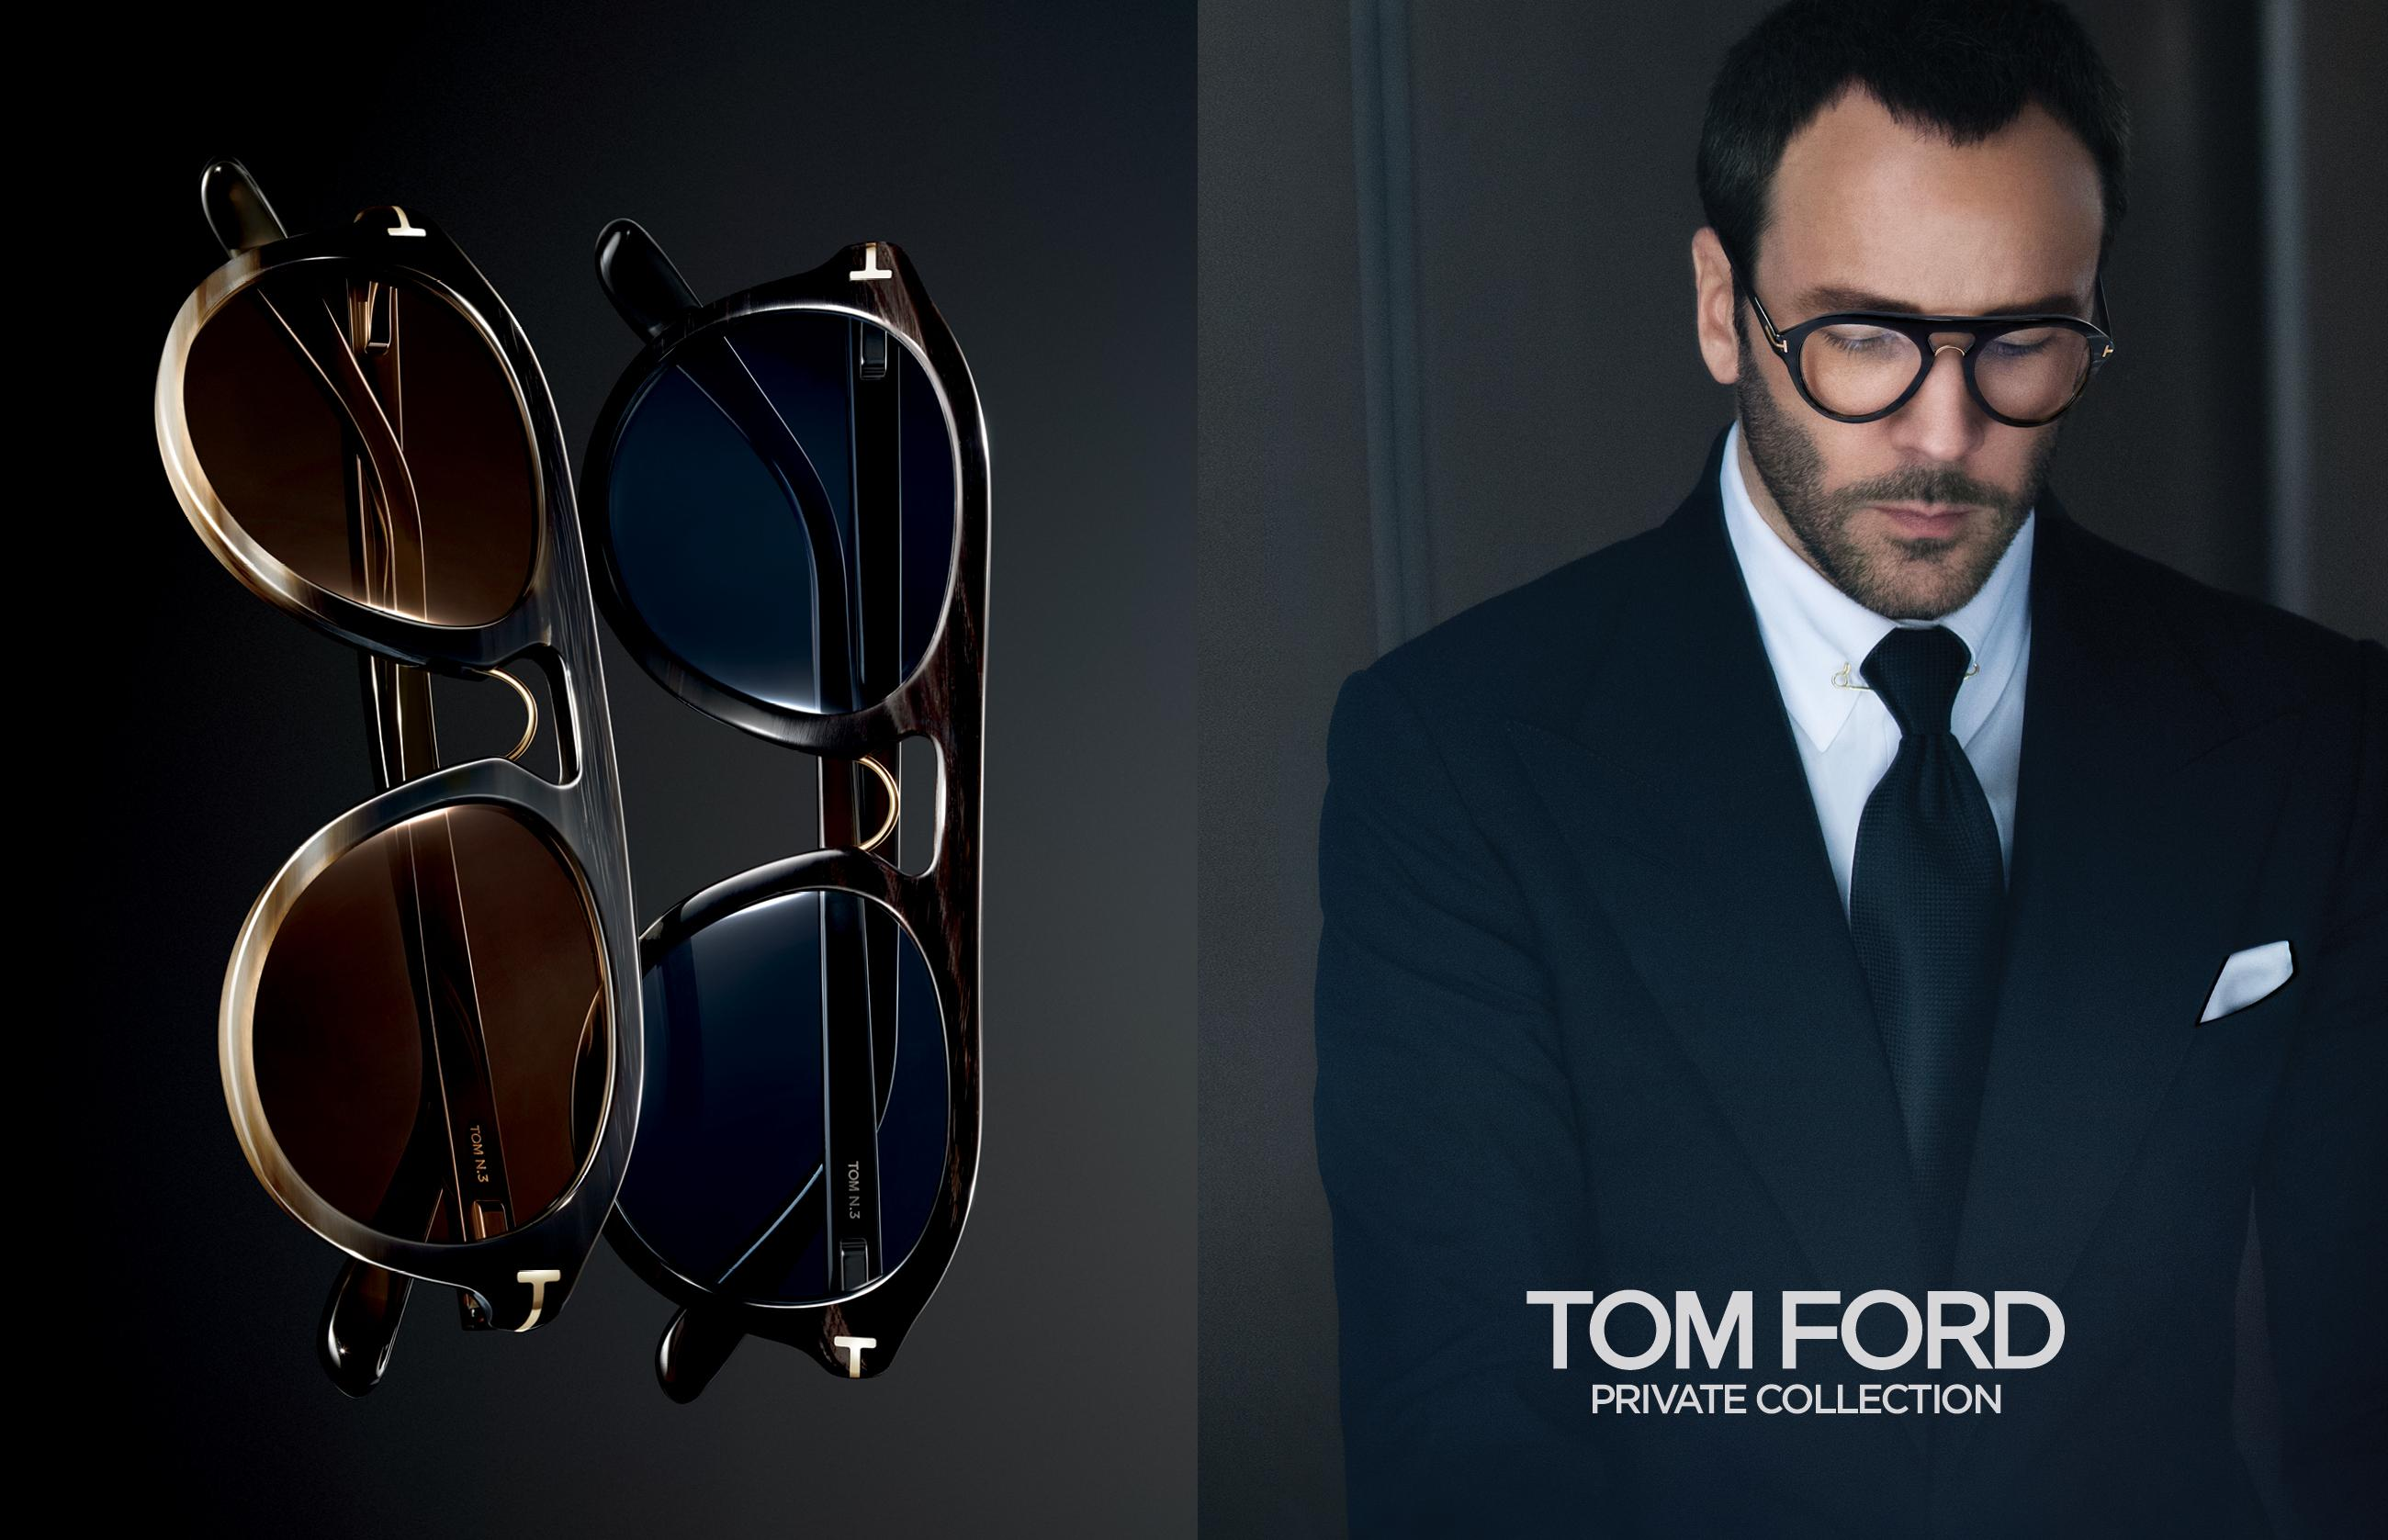 fd463f2a98 TOM FORD LAUNCHES PRIVATE EYEWEAR COLLECTION